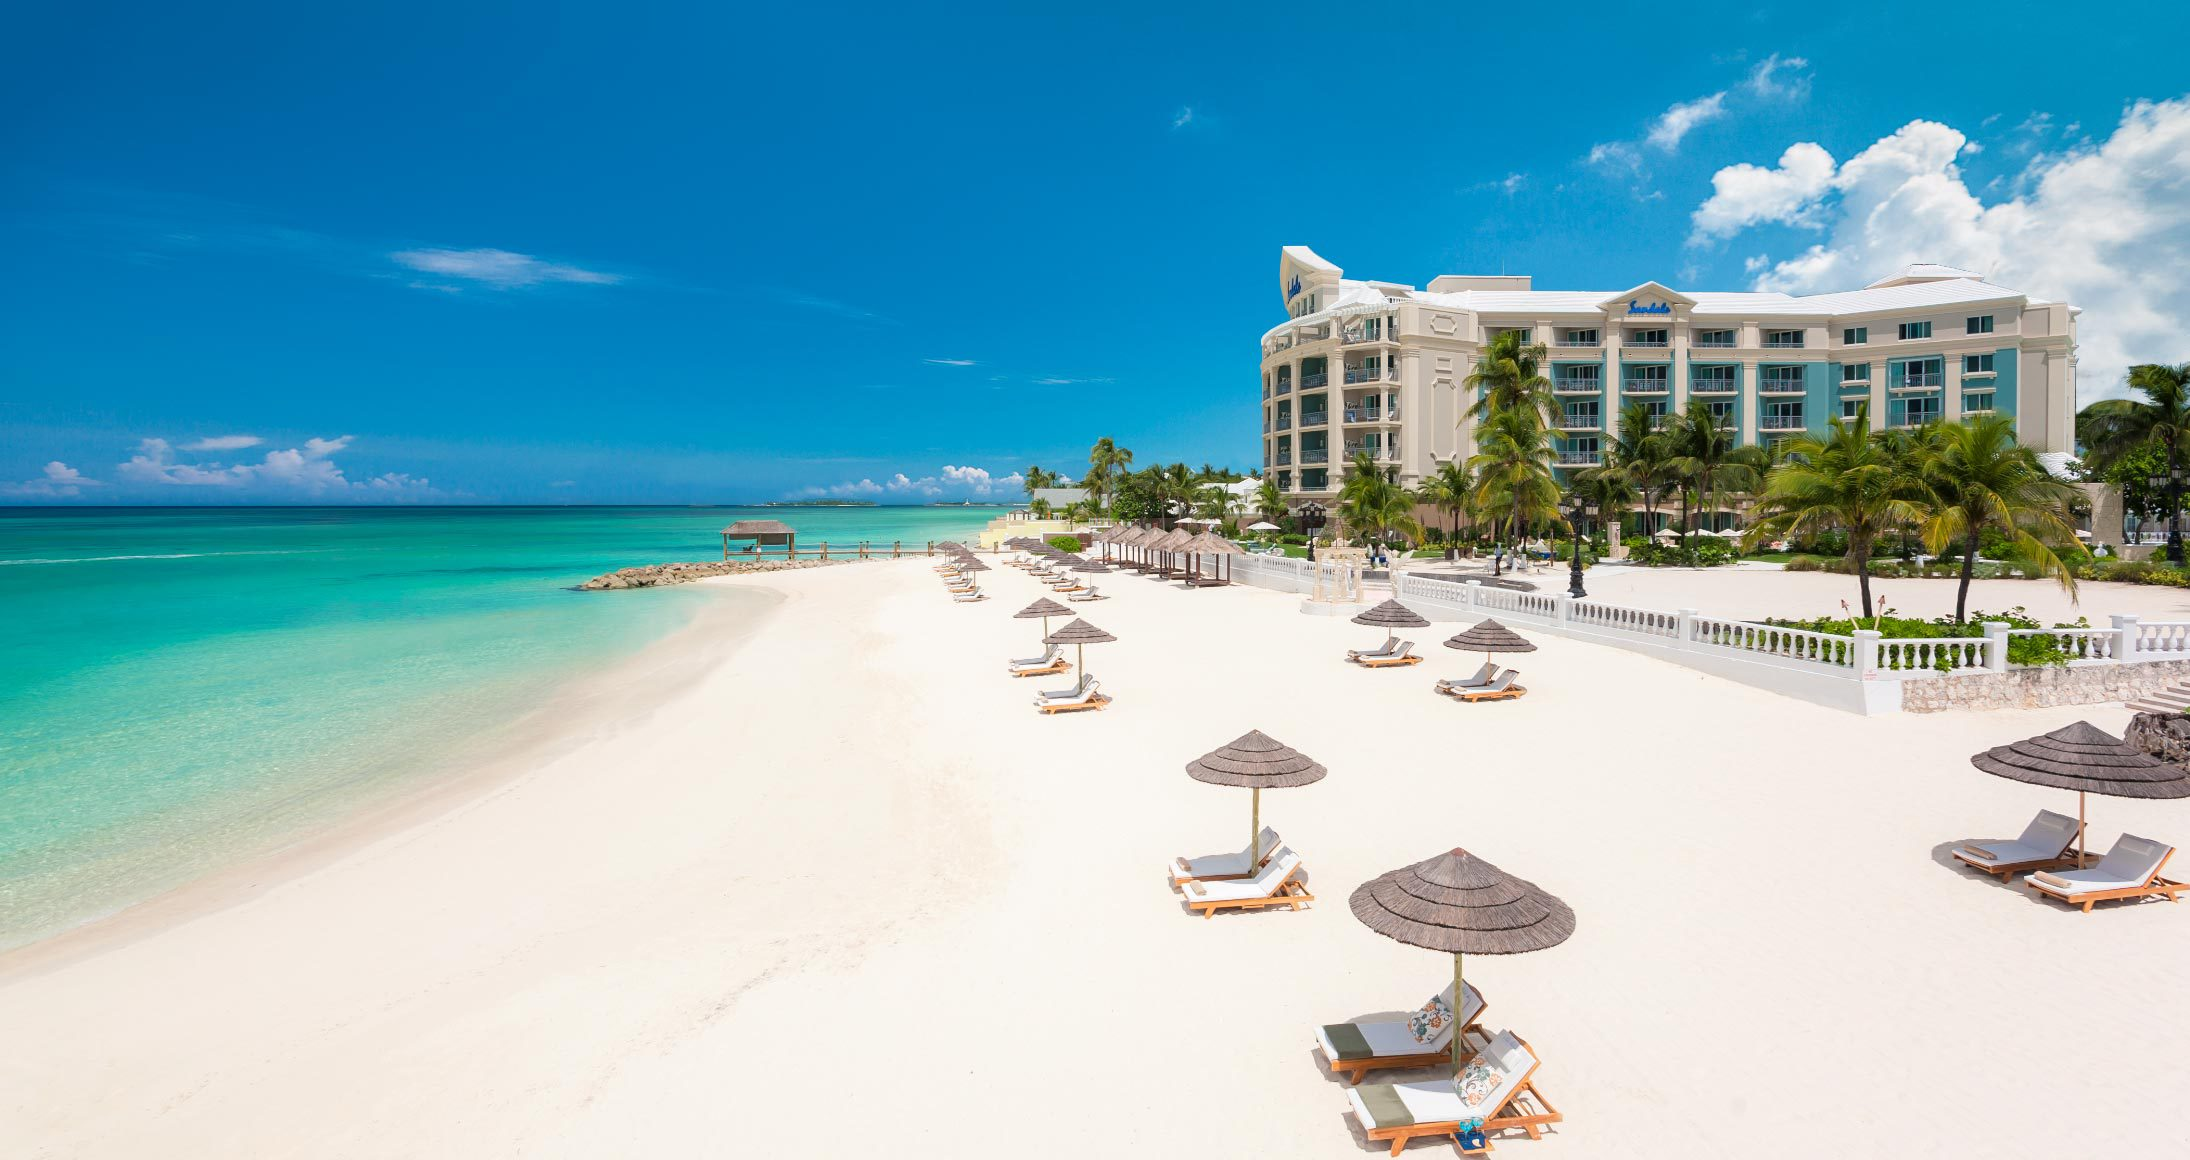 f57931dace84be Sandals Royal Bahamian - All-Inclusive Resort in Nassau